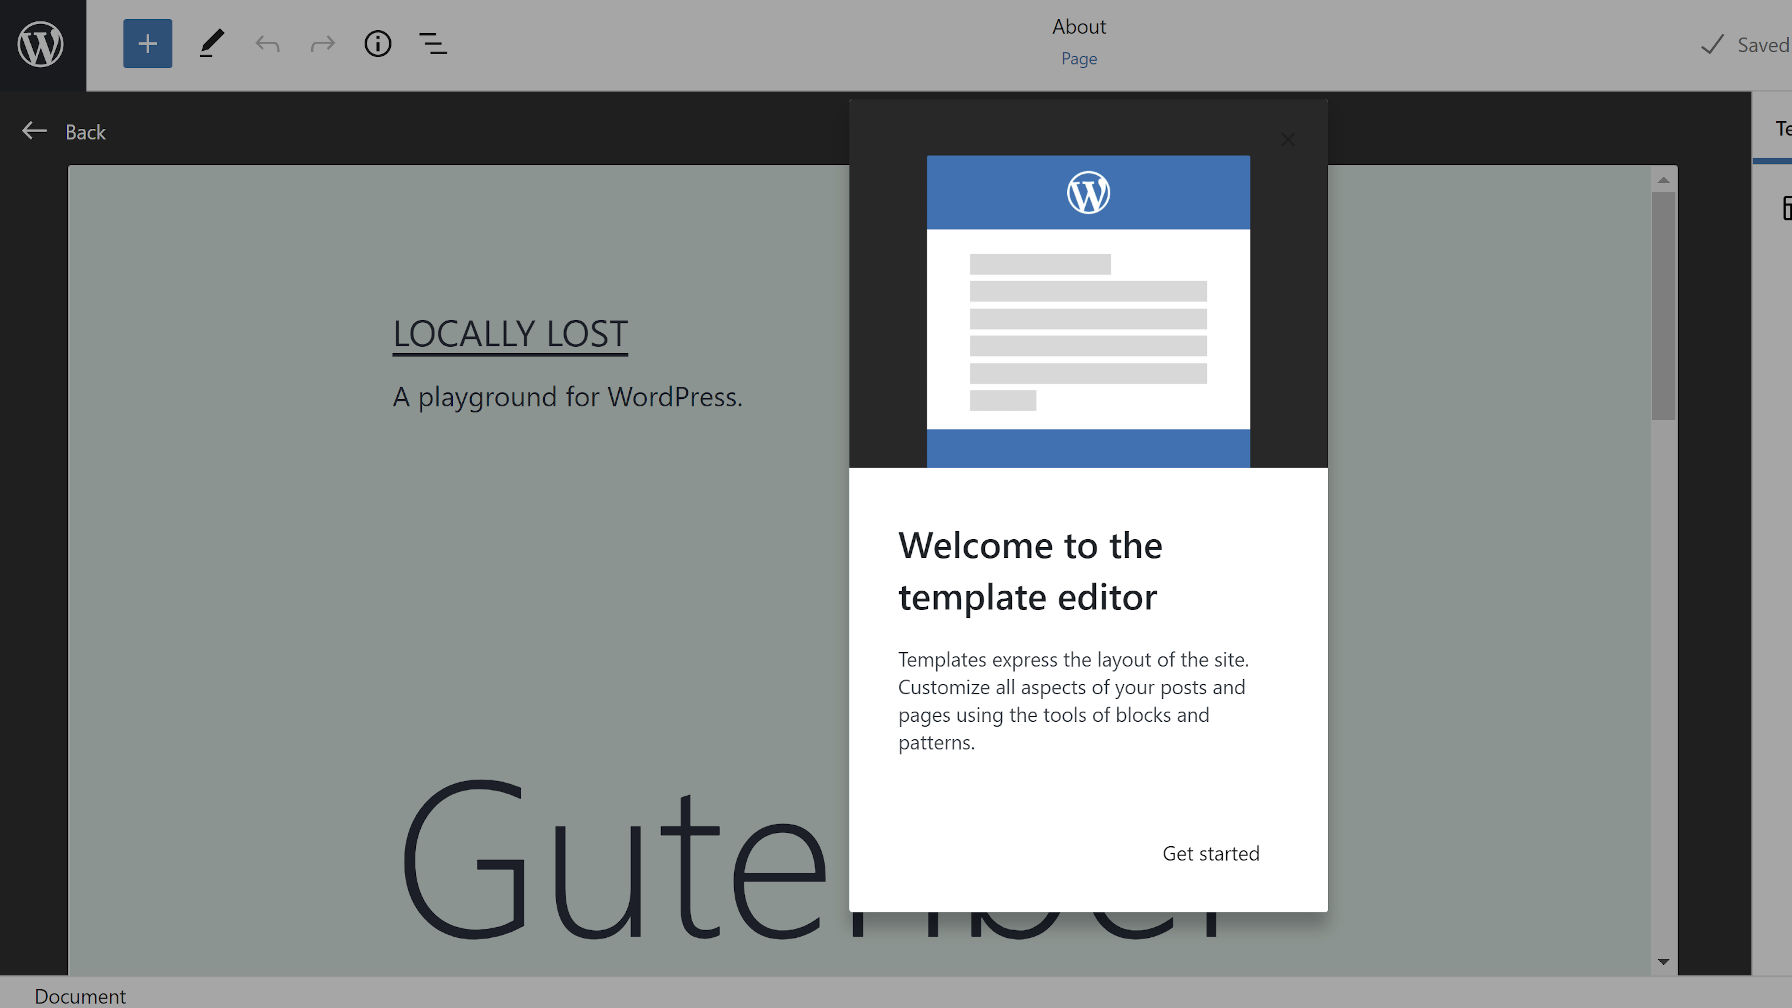 Overlaid welcome message to the new template editor feature.